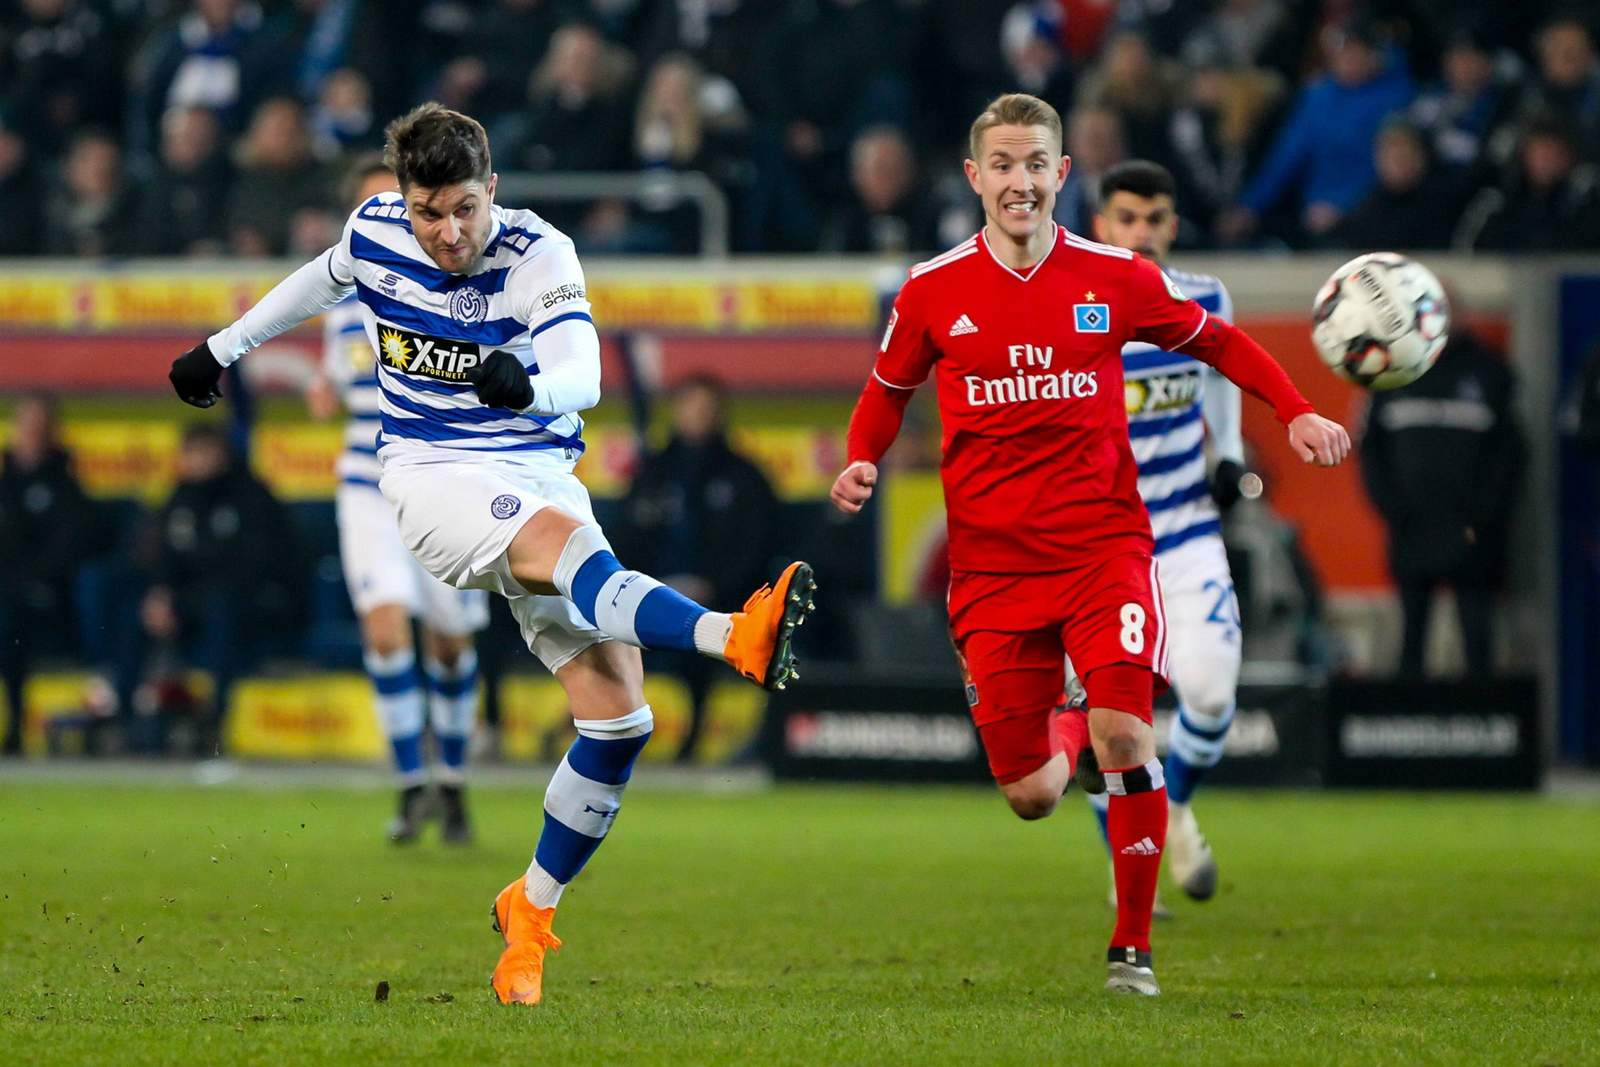 Moritz Stoppelkmap, MSV Duisburg und Lewis Holtby vom HSV